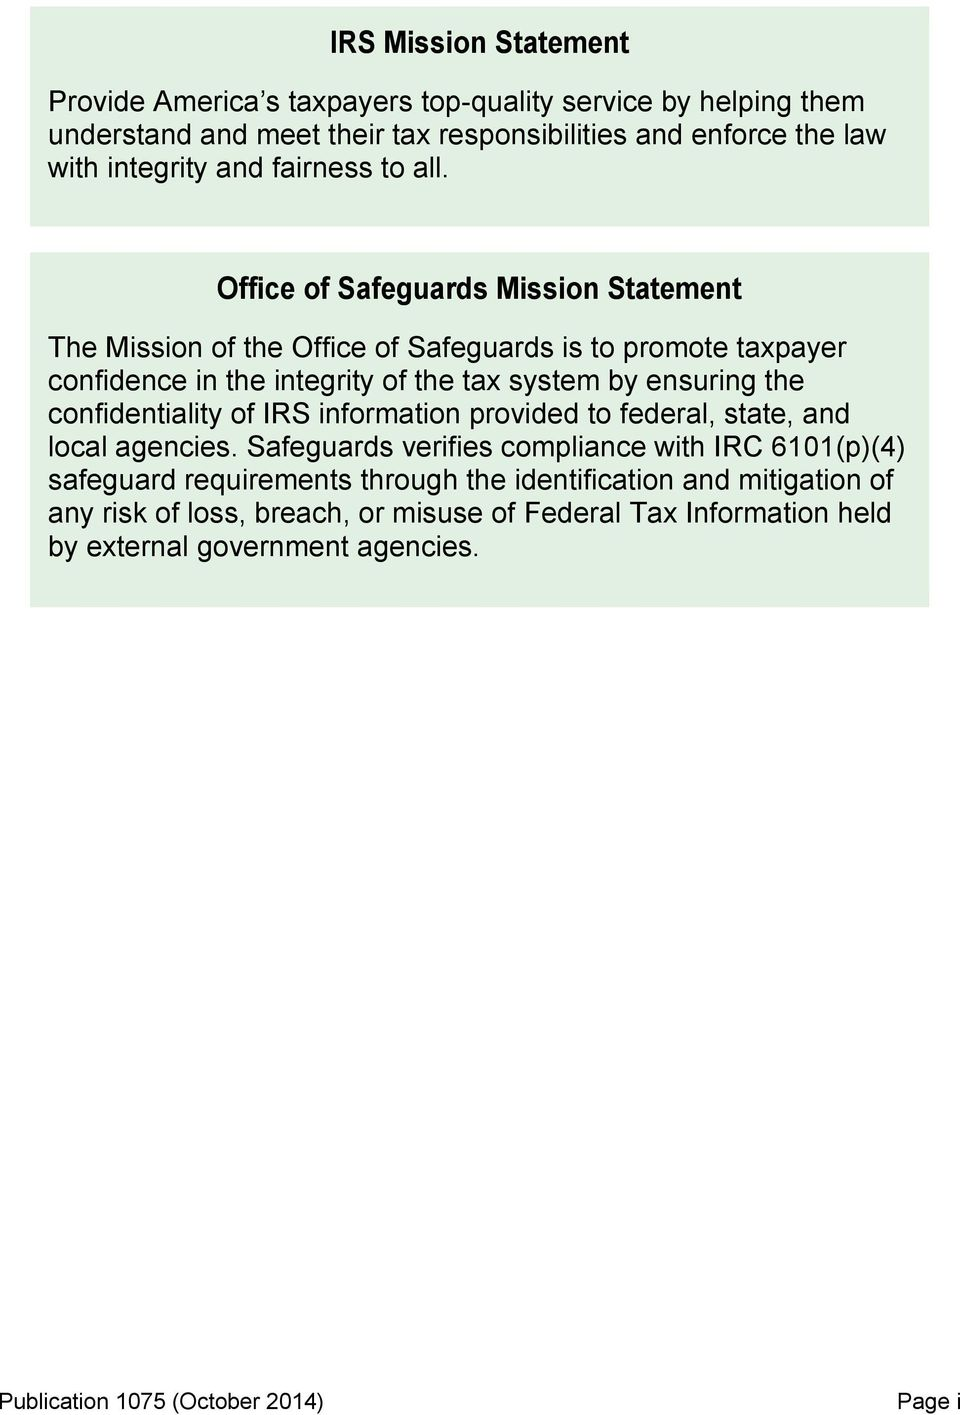 Publication 1075 tax information security guidelines for federal office of safeguards mission statement the mission of the office of safeguards is to promote taxpayer falaconquin